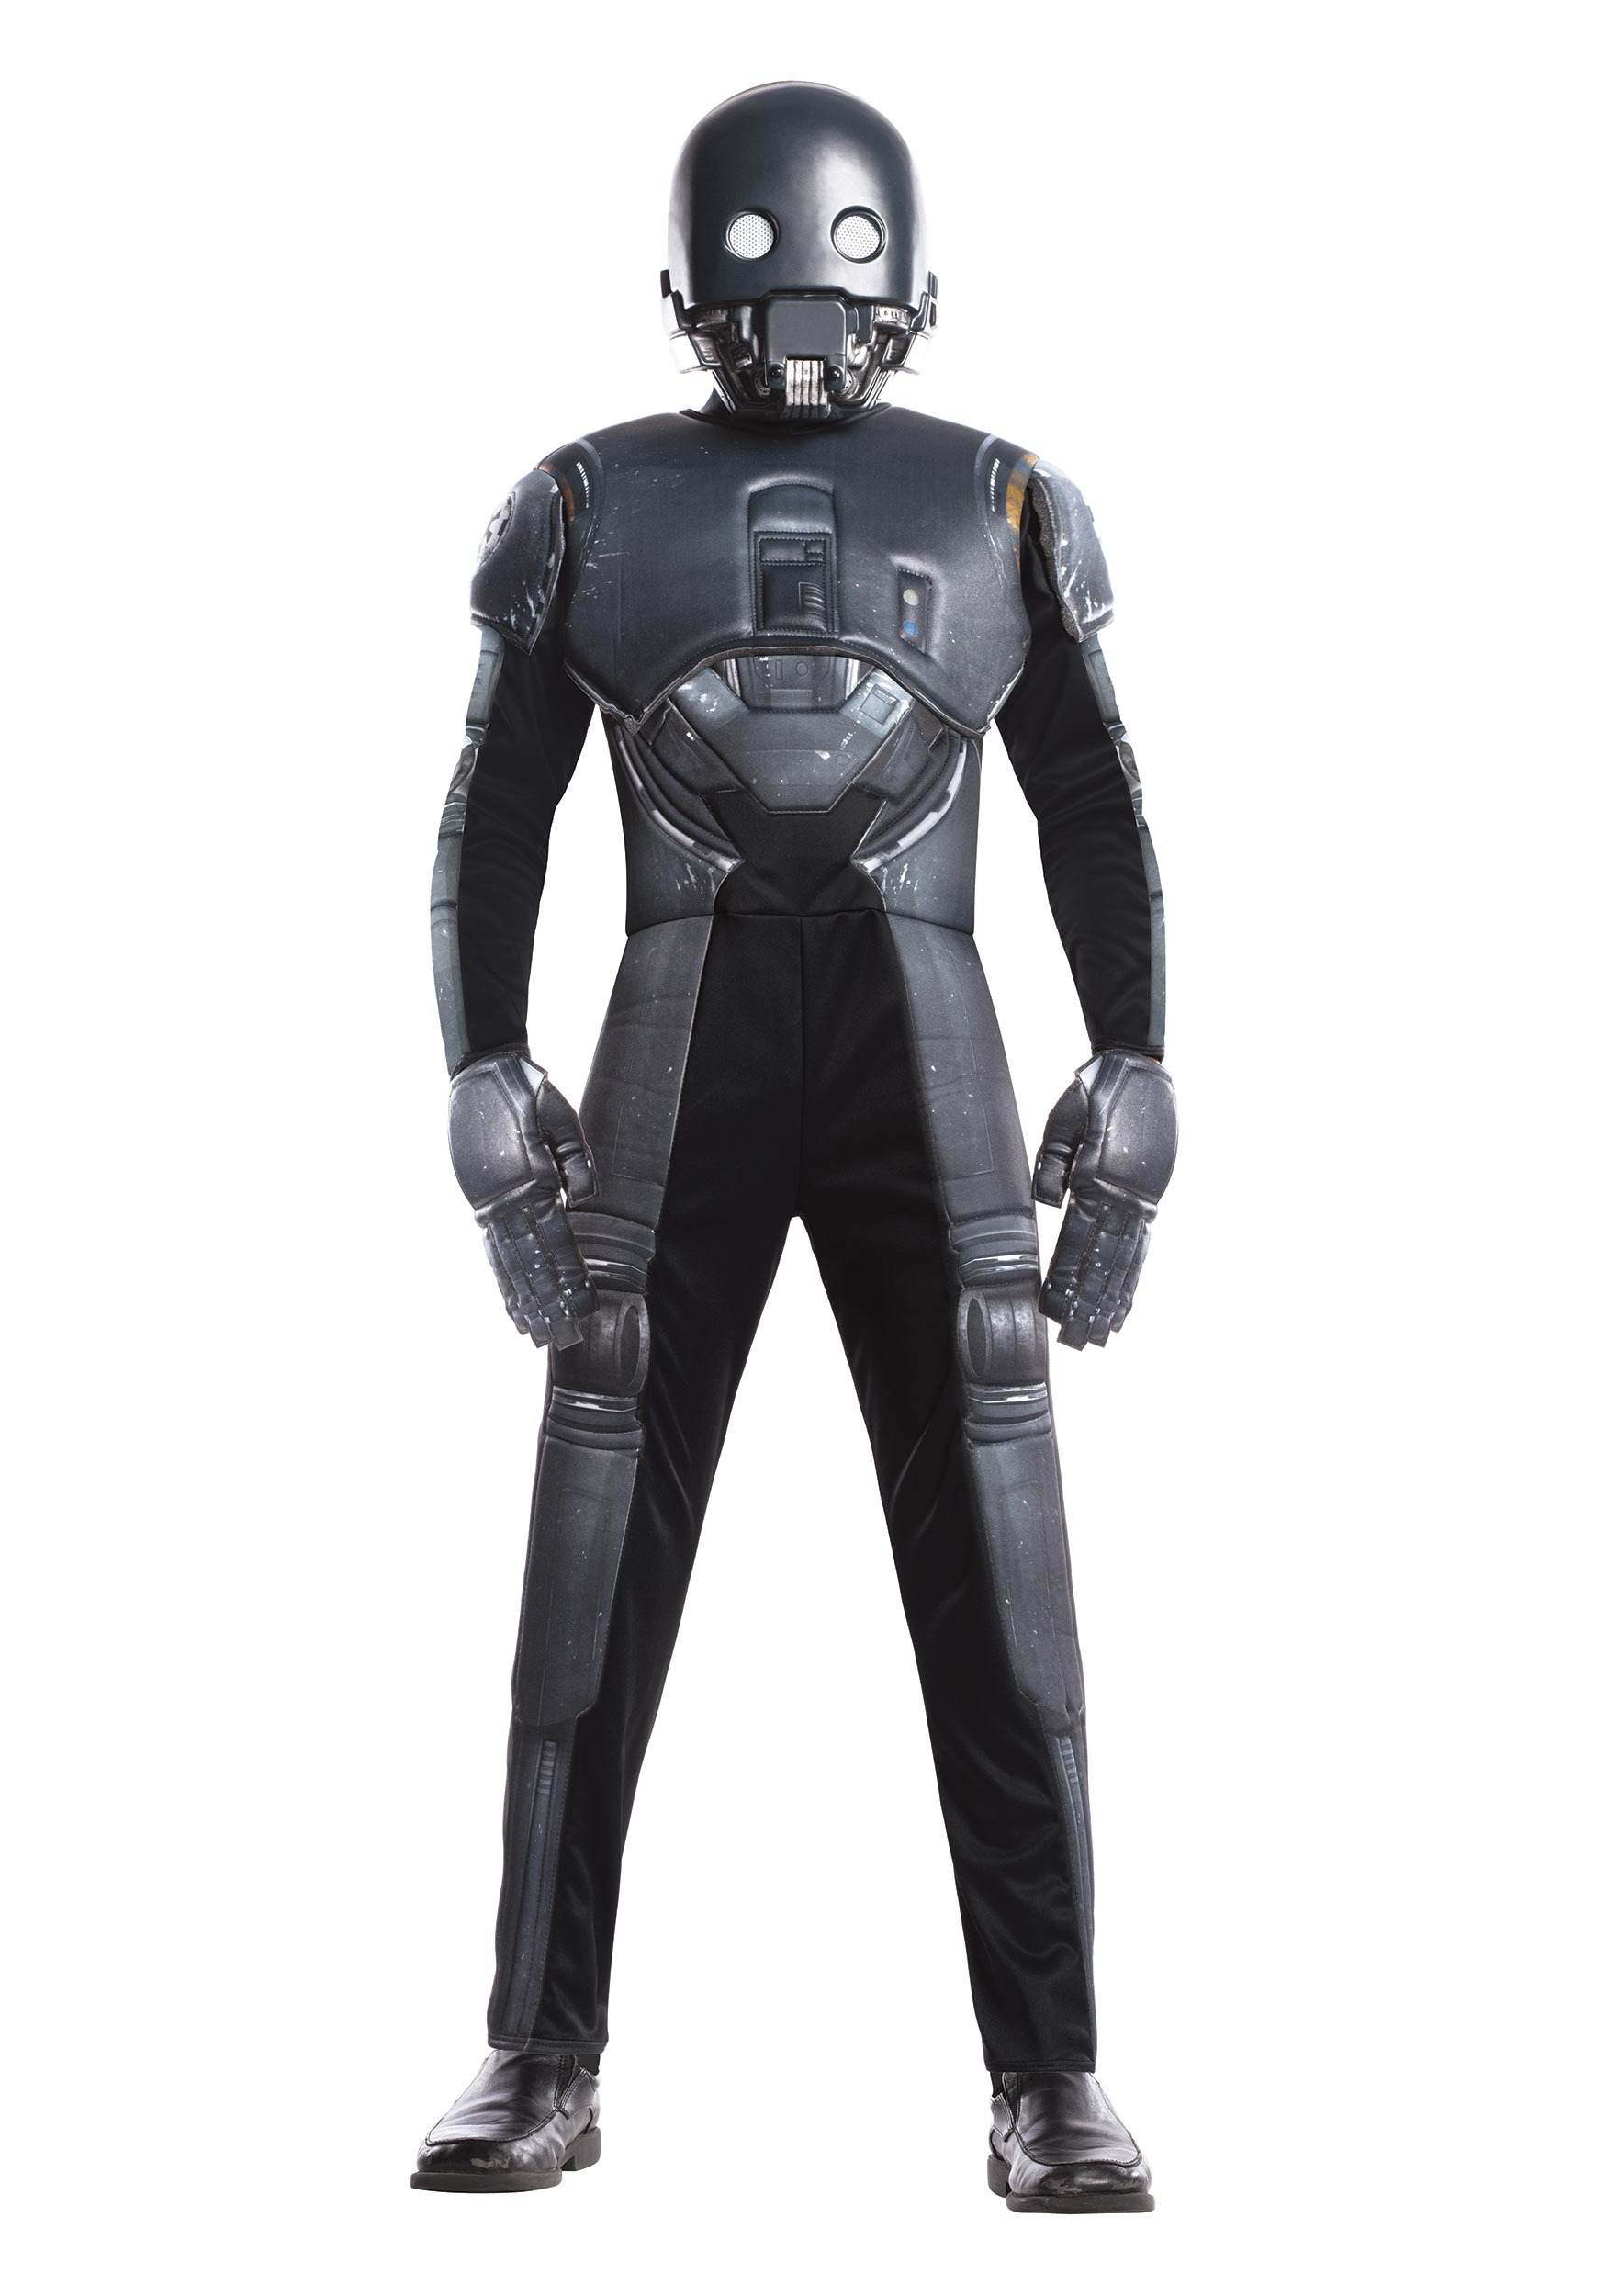 Child Star Wars: Rogue One Deluxe Droid Costume RU630301